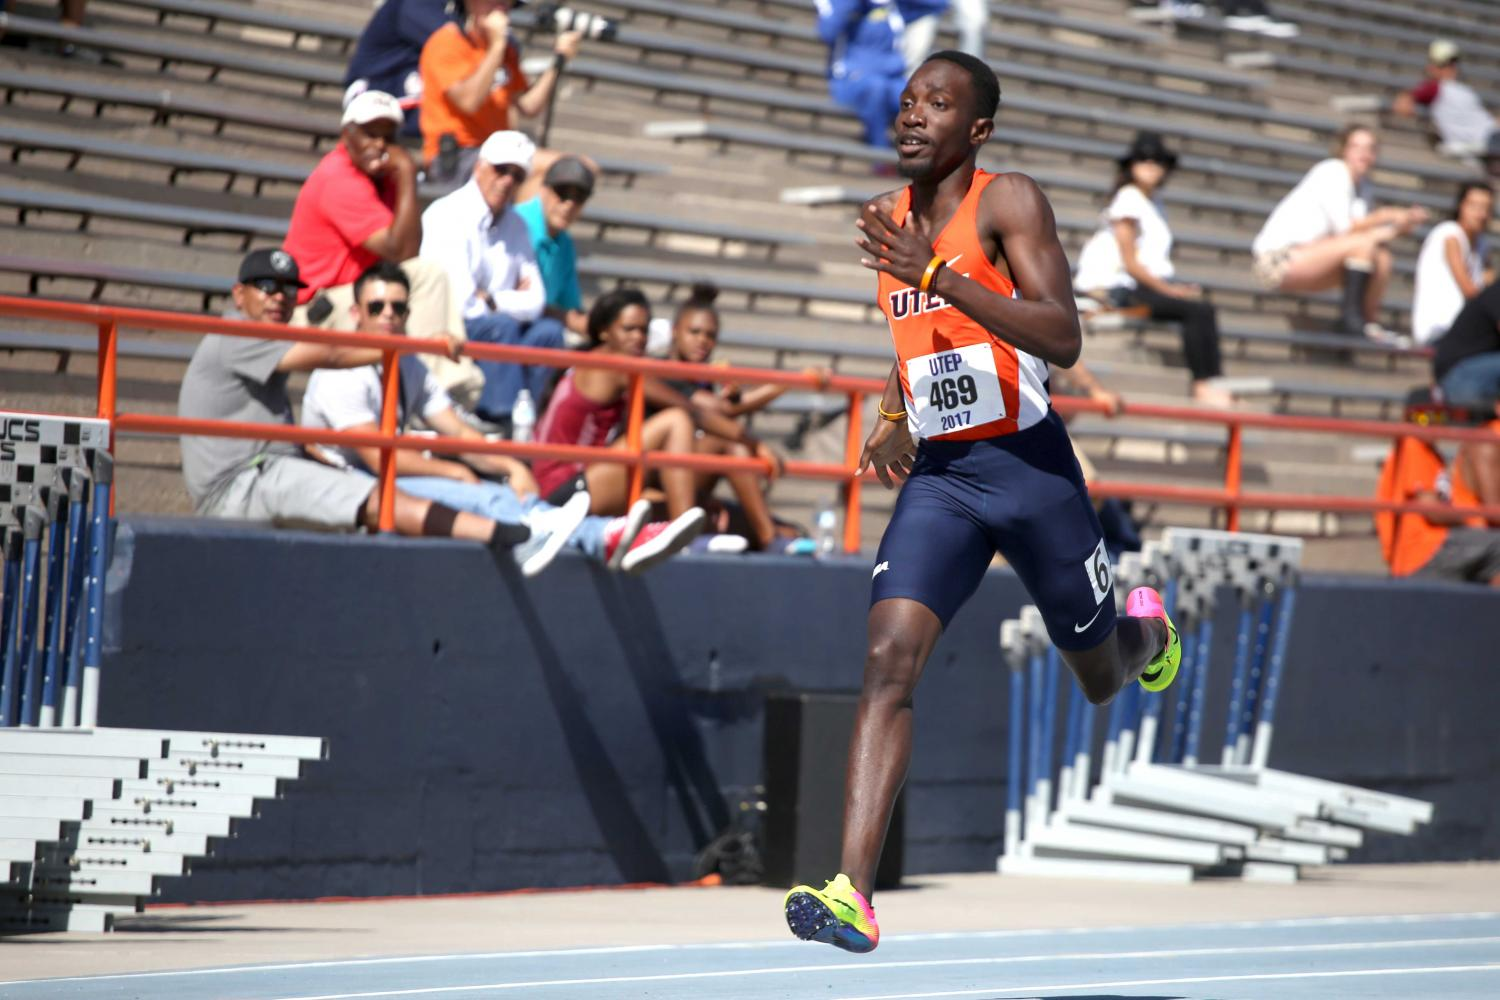 UTEP+Track+and+Field+has+not+won+the+C-USA+men%E2%80%99s+title+since+2013.+The+women+are+looking+to+regain+their+2015+championship+title%2C+lost+to+Rice+in+2016.